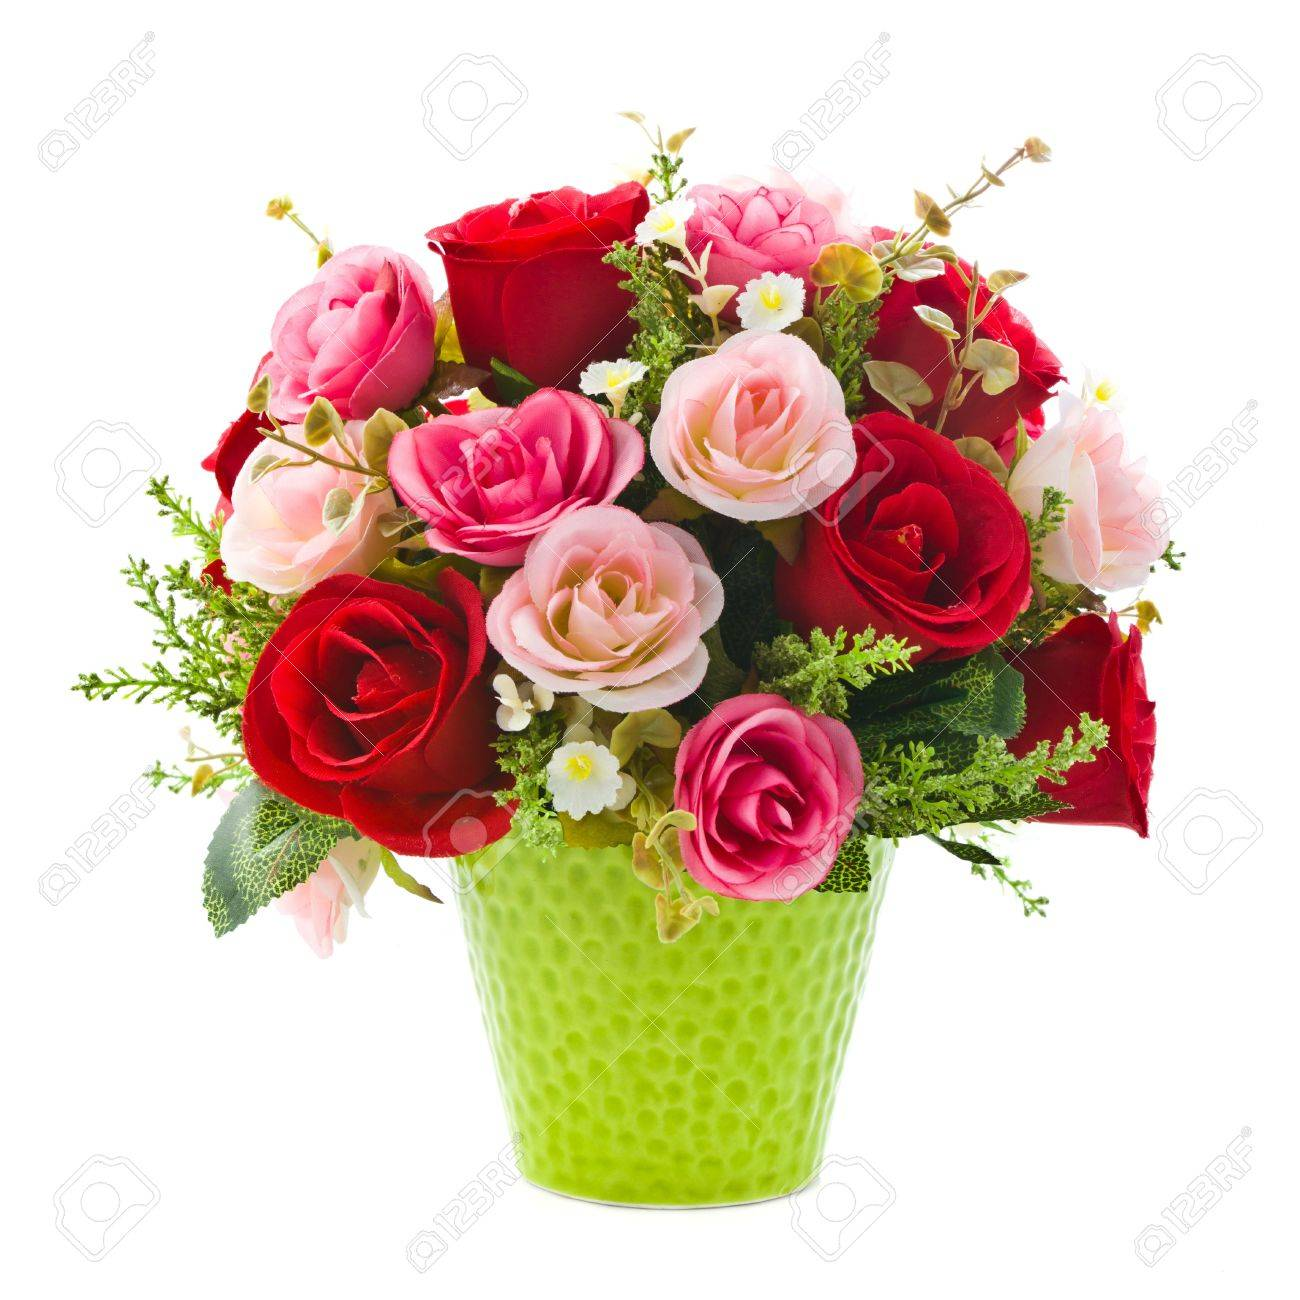 Artificial rose flowers in green vase on white background stock artificial rose flowers in green vase on white background stock photo 13906683 mightylinksfo